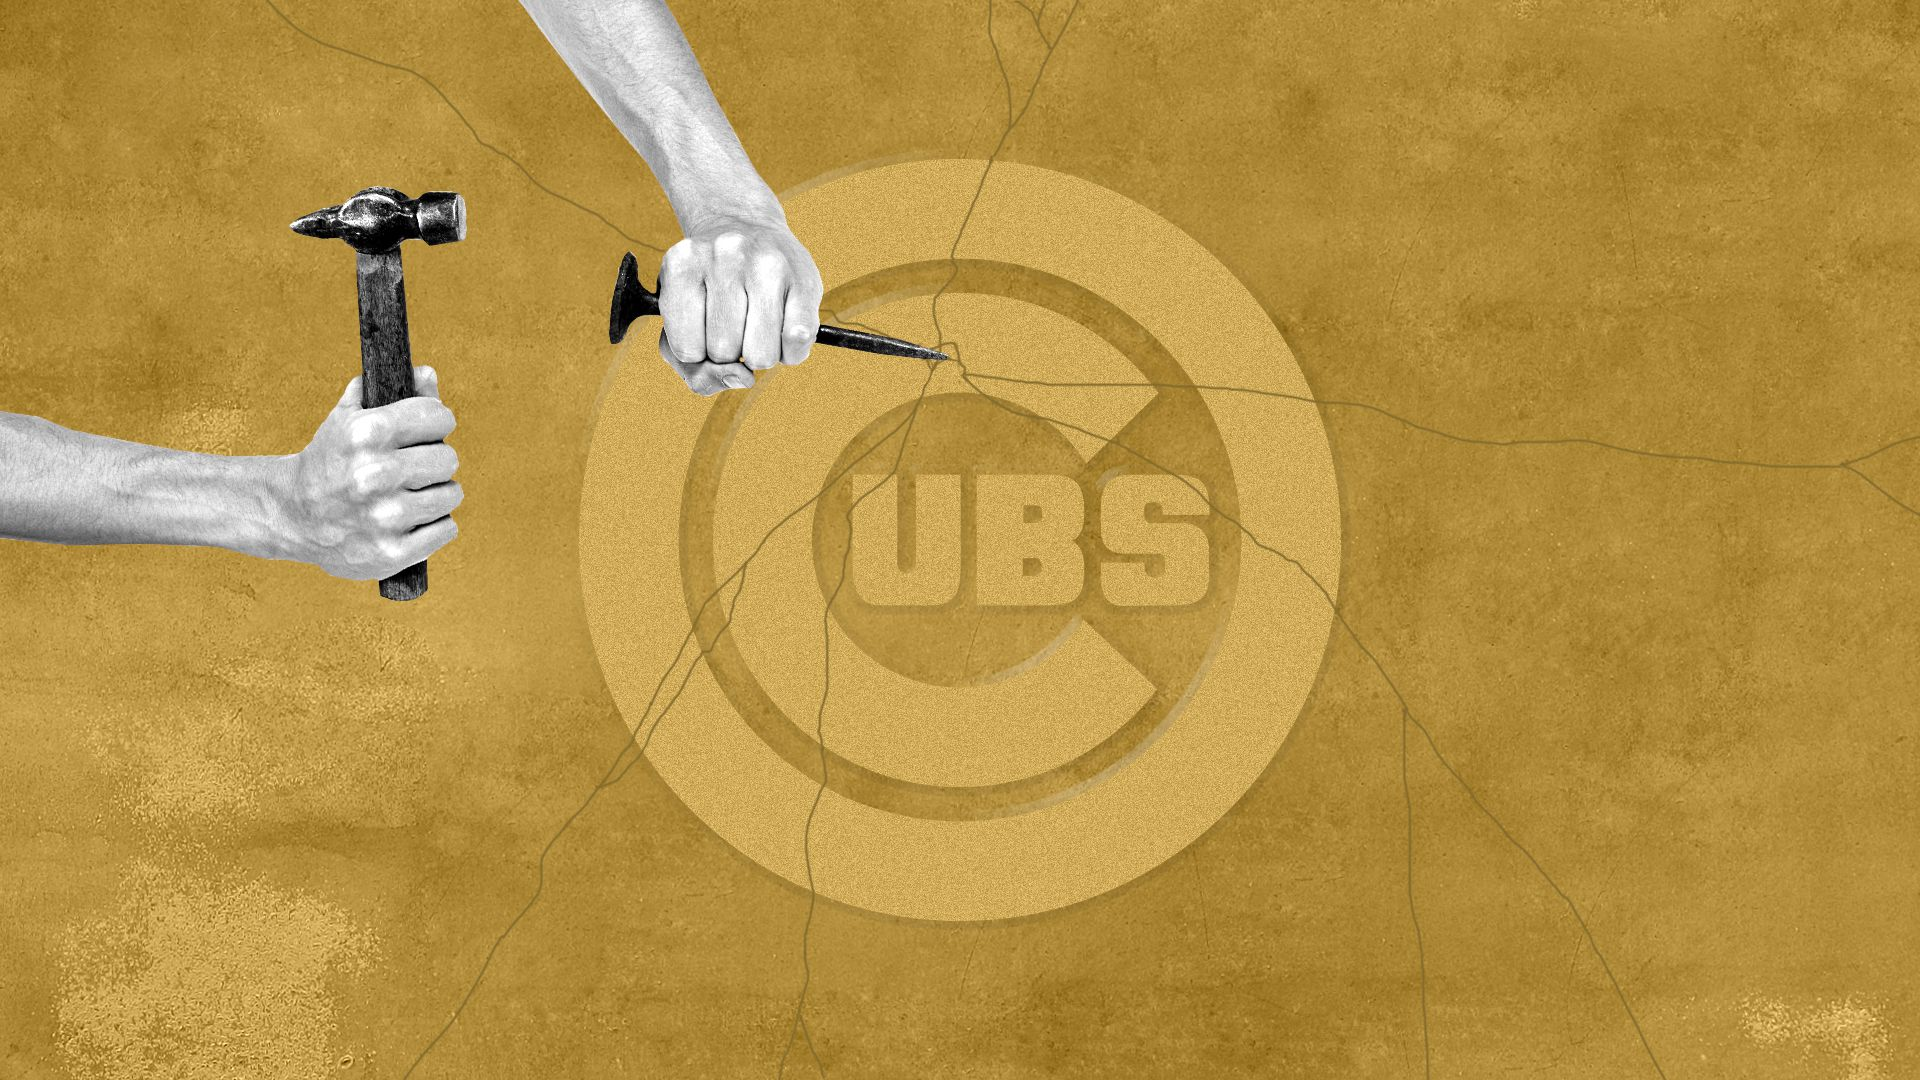 Photo illustration of hands holding a chisel and hammer breaking a carved Cubs logo